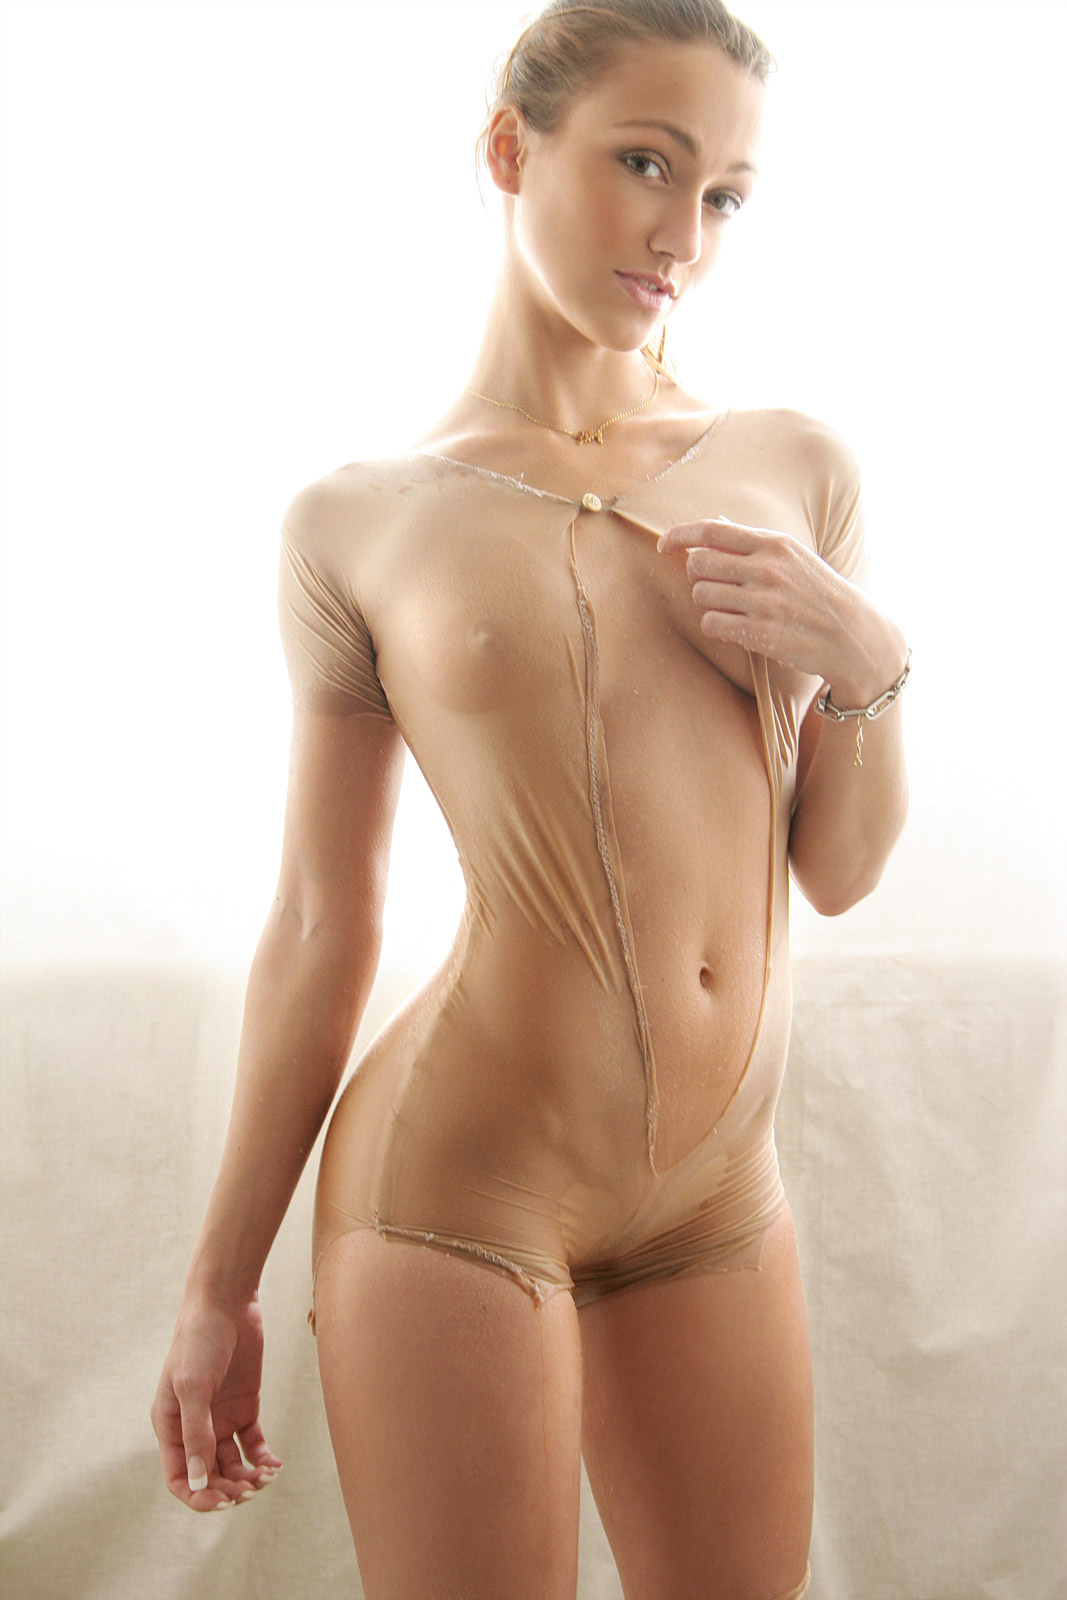 sex-pussy-women-in-tight-fitting-clothes-nude-koria-lady-boy